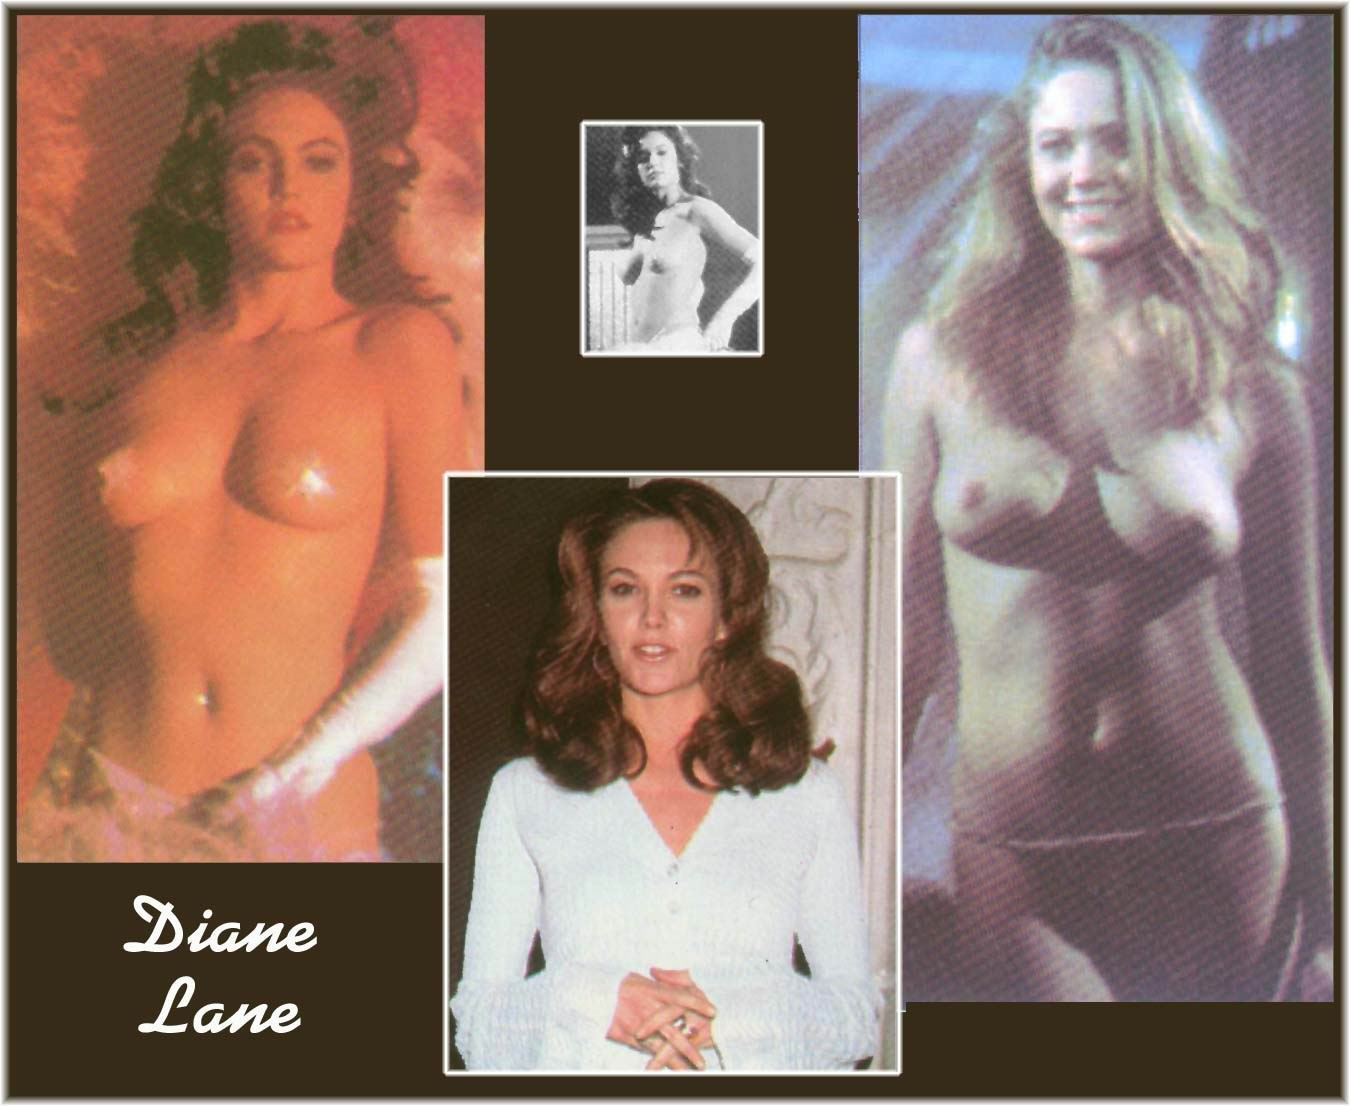 Young diane lane stolen sex tape porn photo leaked